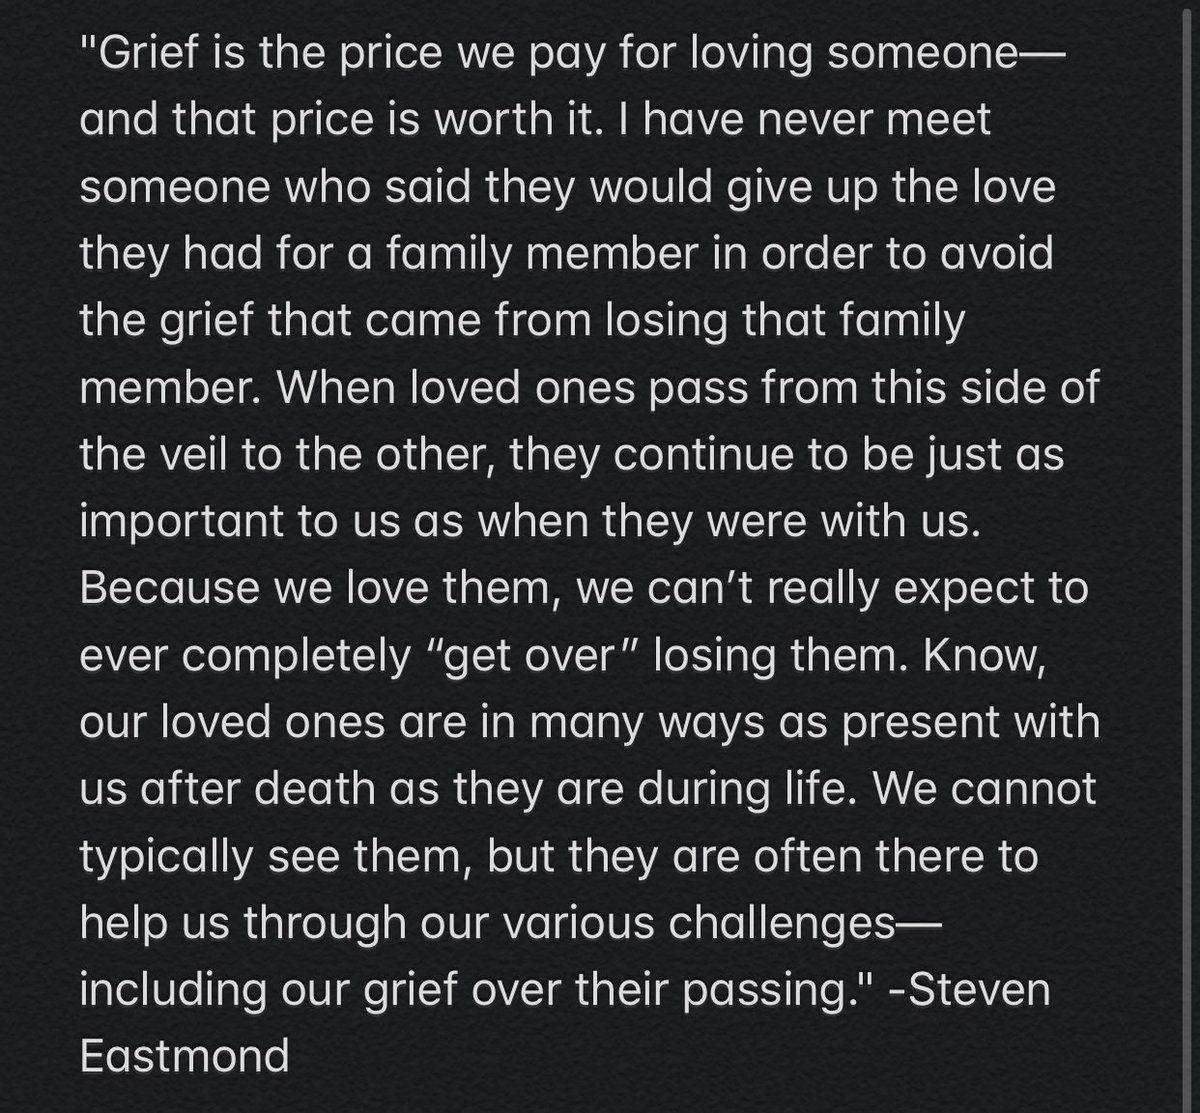 Suffering from Grief? This is one on my favorite #GeneralConference quotes about Grief. Hope this can help others. https://t.co/ygcwuY7MW7